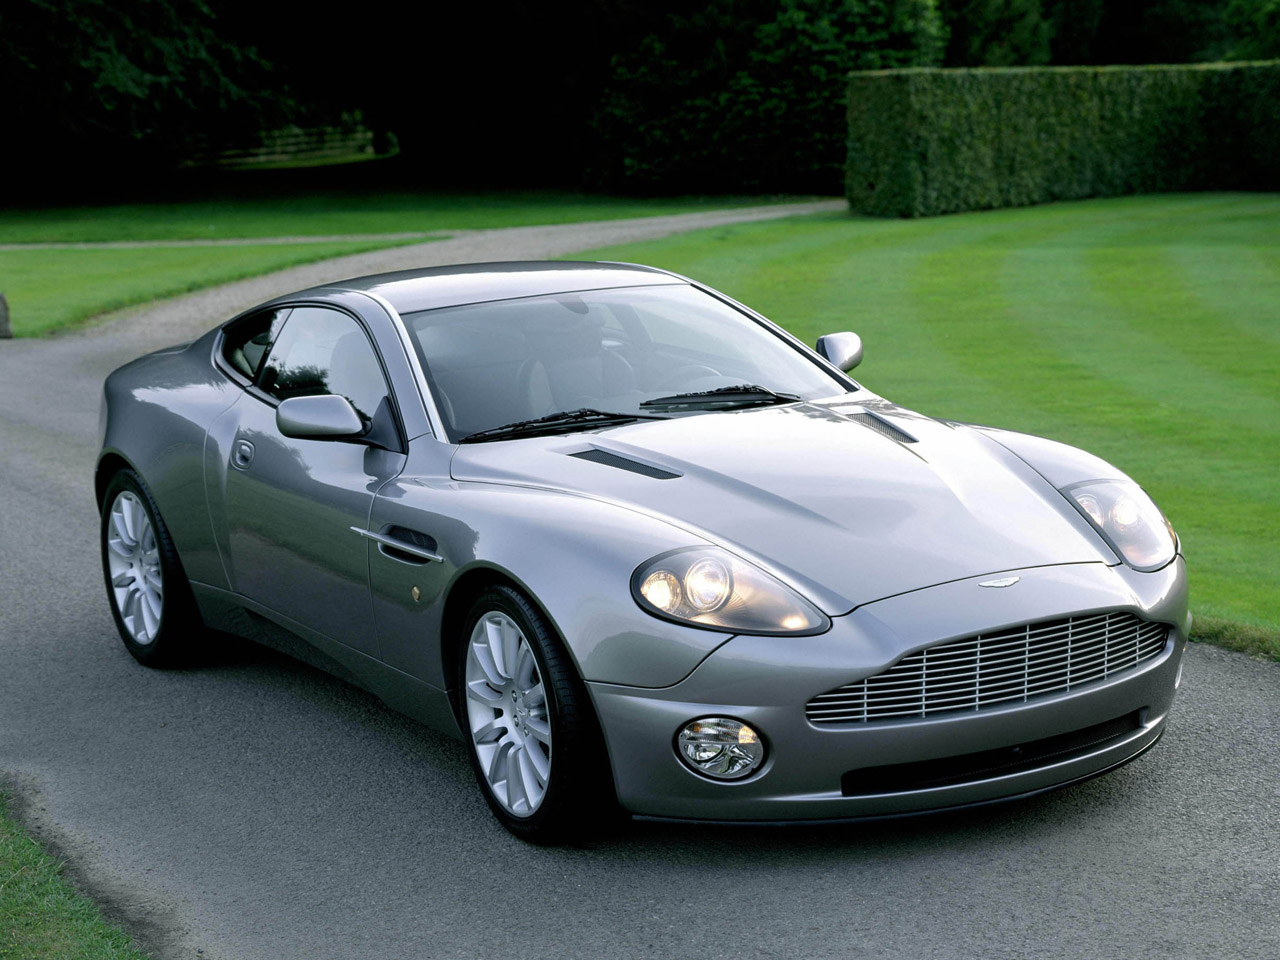 ASTON MARTIN Amazing Car Wallpapers Download Cars Wallpapers 1280x960